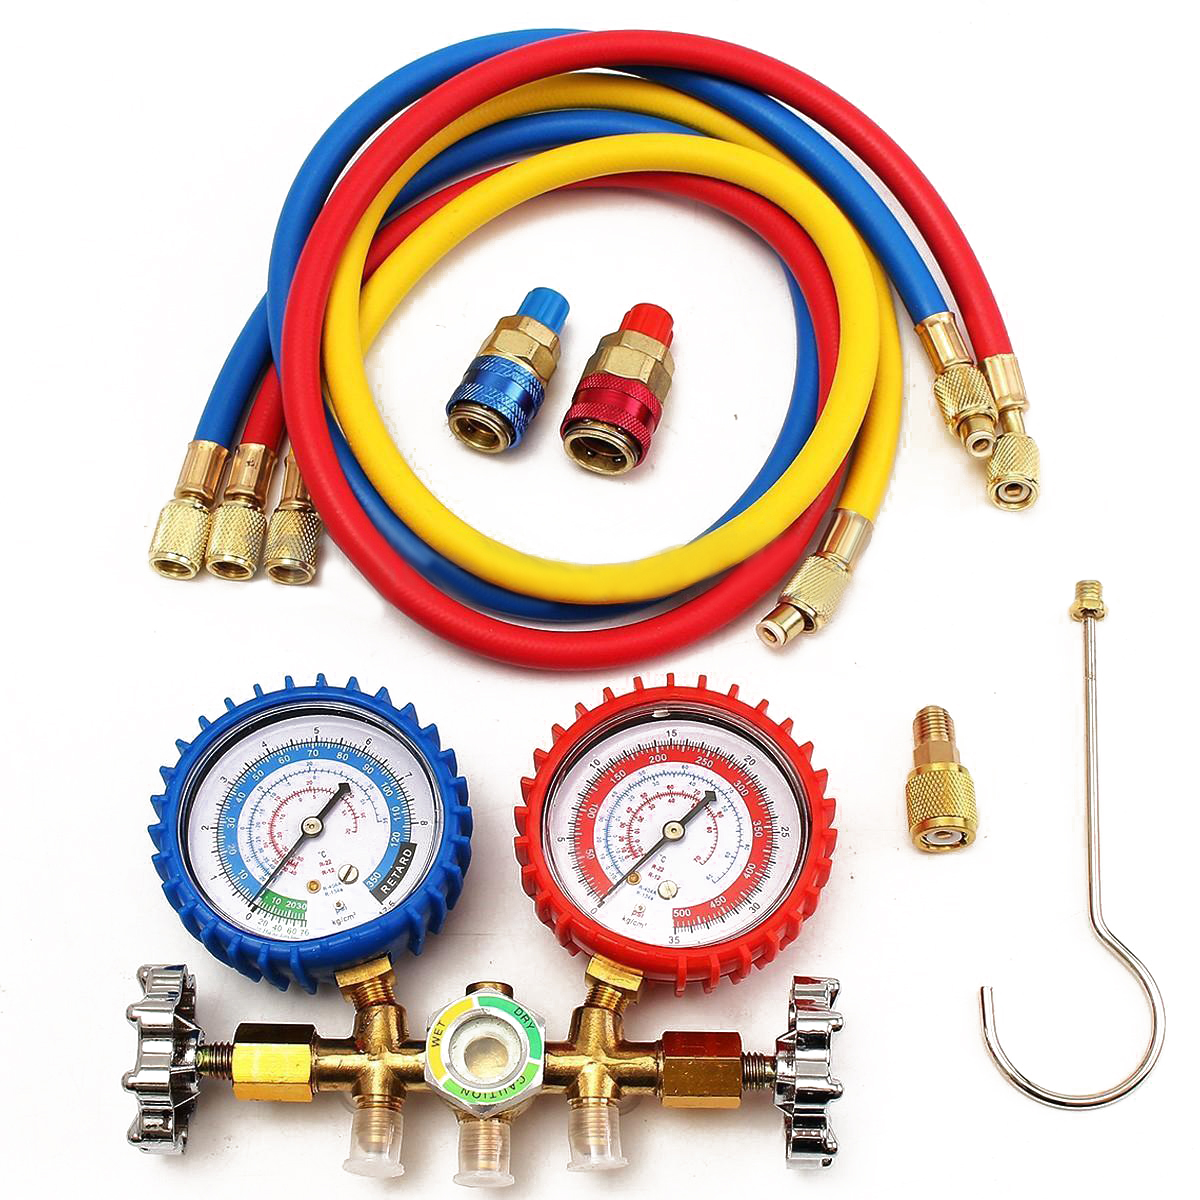 Mayitr R134a R12 R22 R502 HVAC A/C Refrigerant Manifold Gauge Valve With Quick Couplers Charging Hose 90cm Straight Adapter r134a r12 r22 r404a a c manifold gauge set with hose for household automobile a c air conditioning